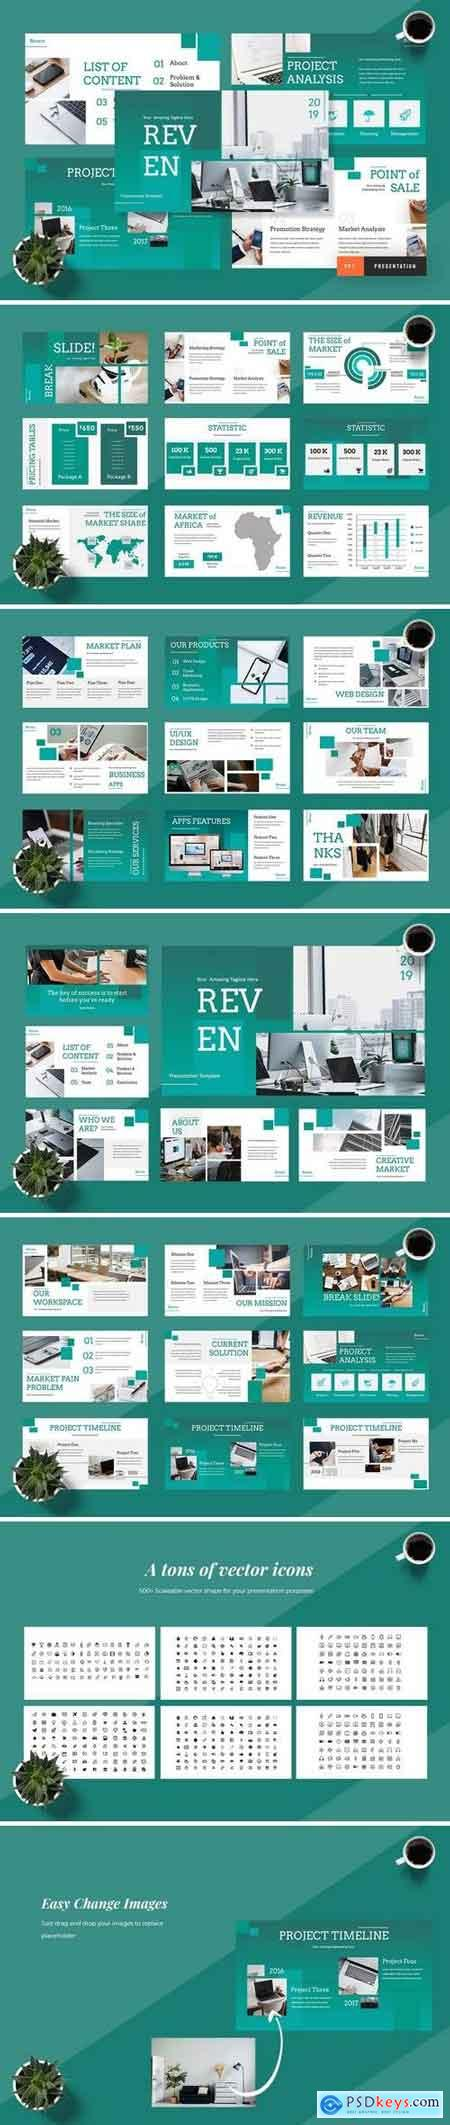 Reven - Pitch Deck - Powerpoint, Keynote, Google Sliders Templates